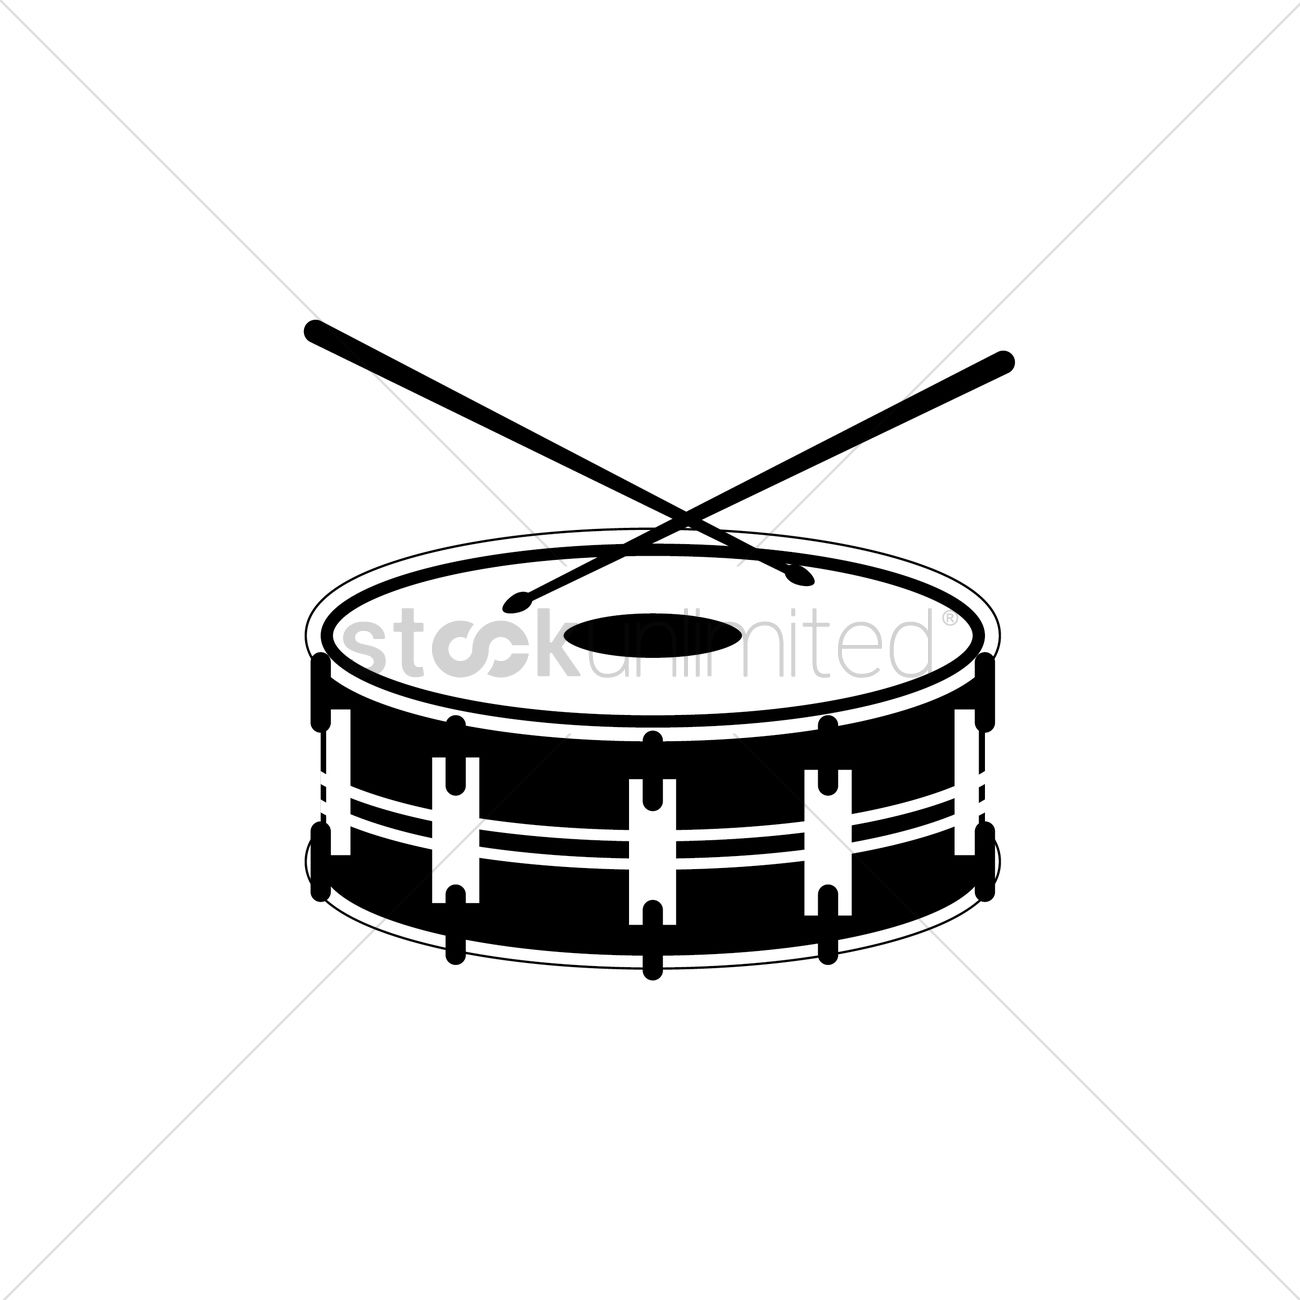 Free Silhouette Of Bass Drum Vector Image